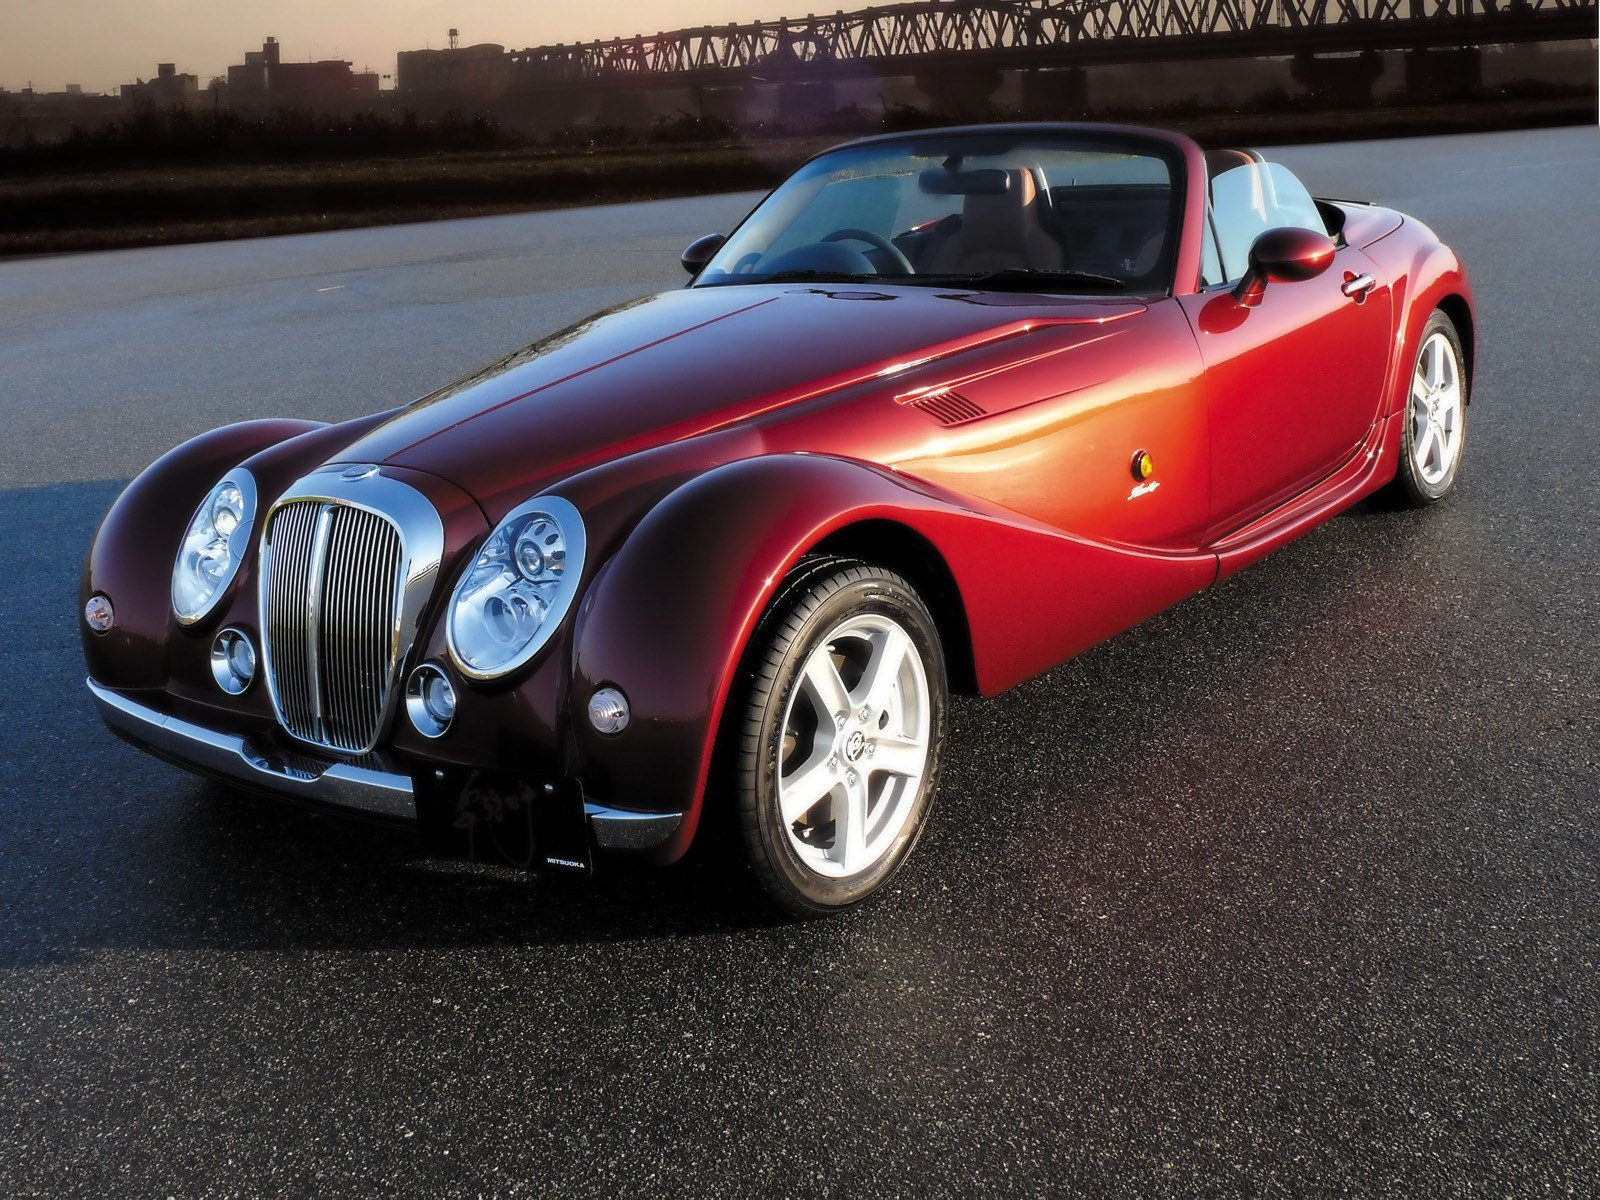 New Mitsuoka Himiko Photos Photogallery With 5 Pics On This Month